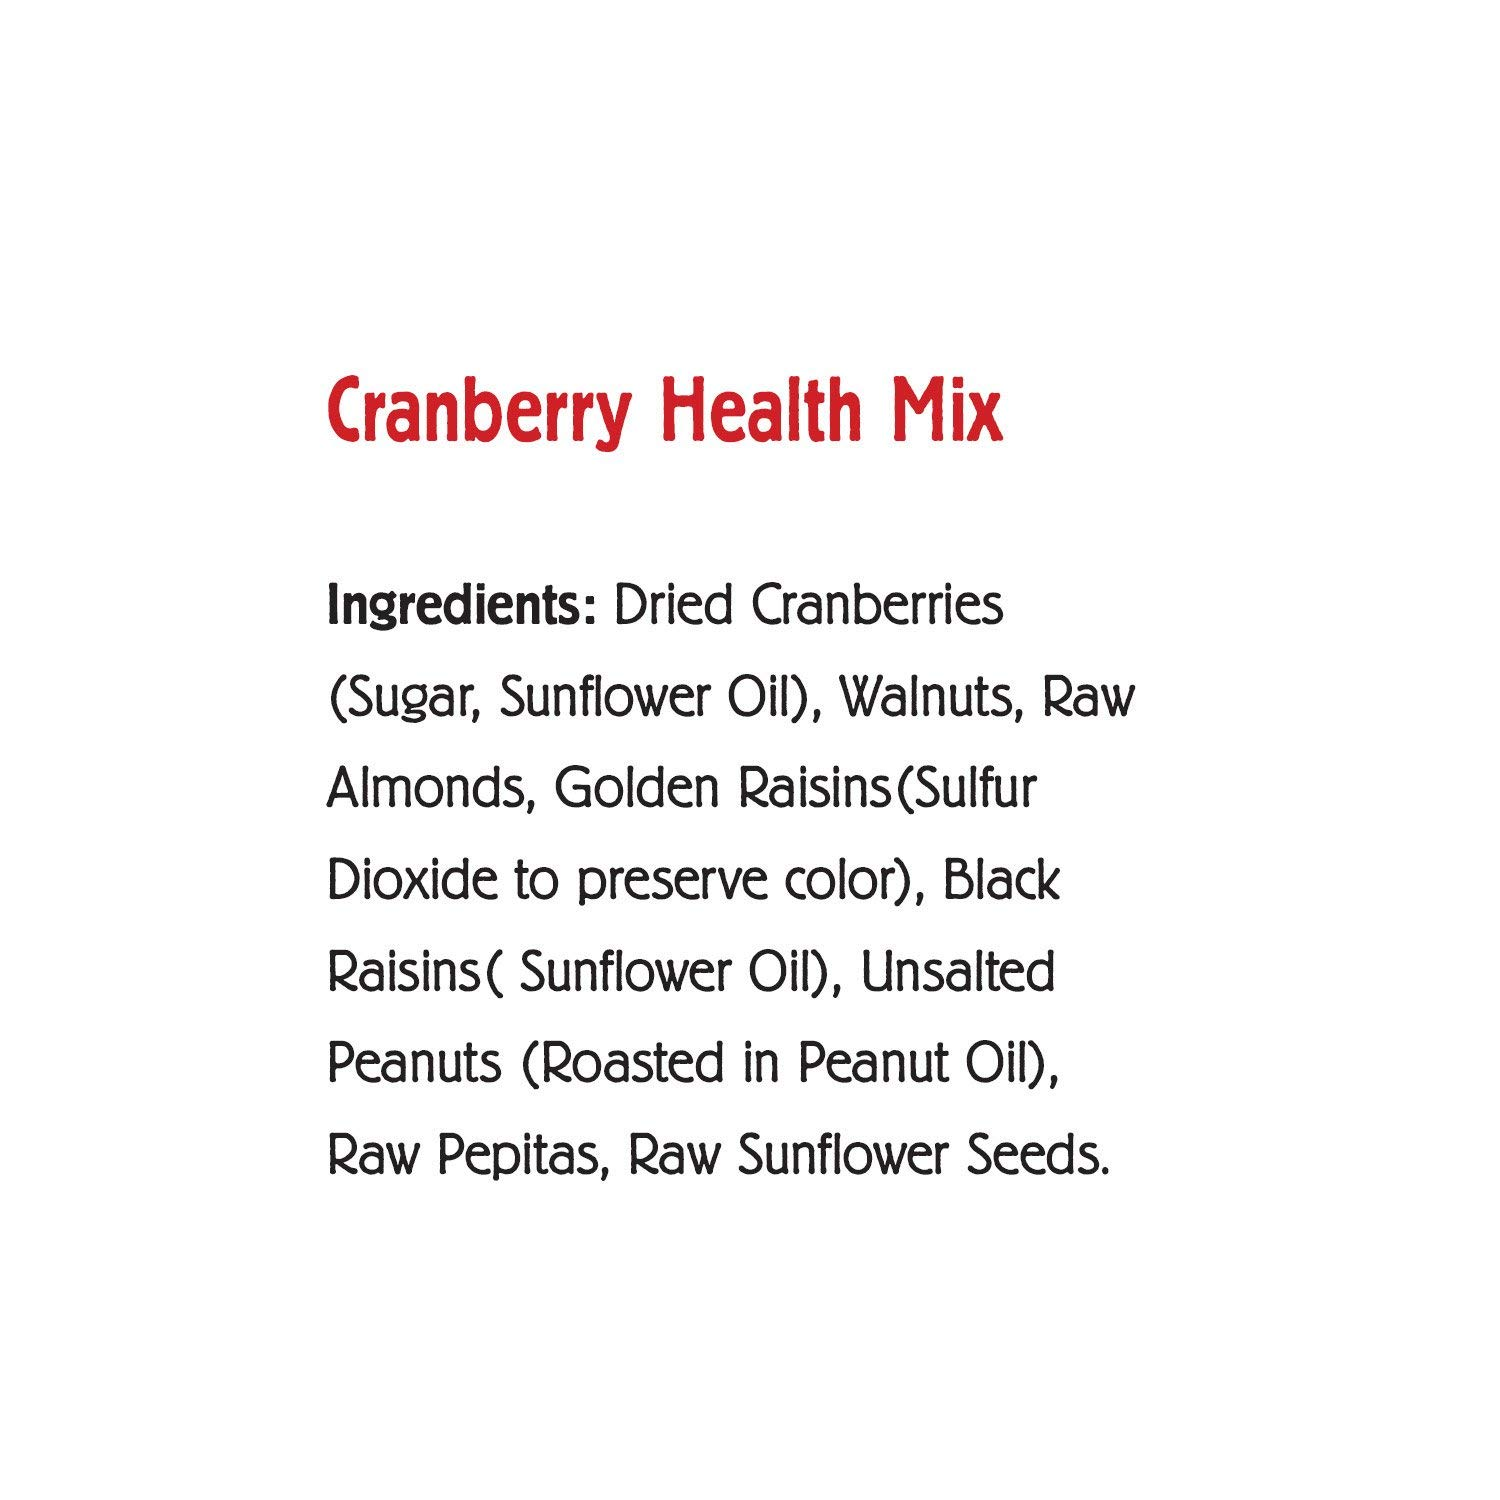 Nature's Garden Trail Mix Snack Packs, Multi Pack 1.2 oz bags, Pack of 24, Omega-3 Deluxe Mix, Cranberry Health Mix (Pack of 2) by Nature's Garden (Image #5)